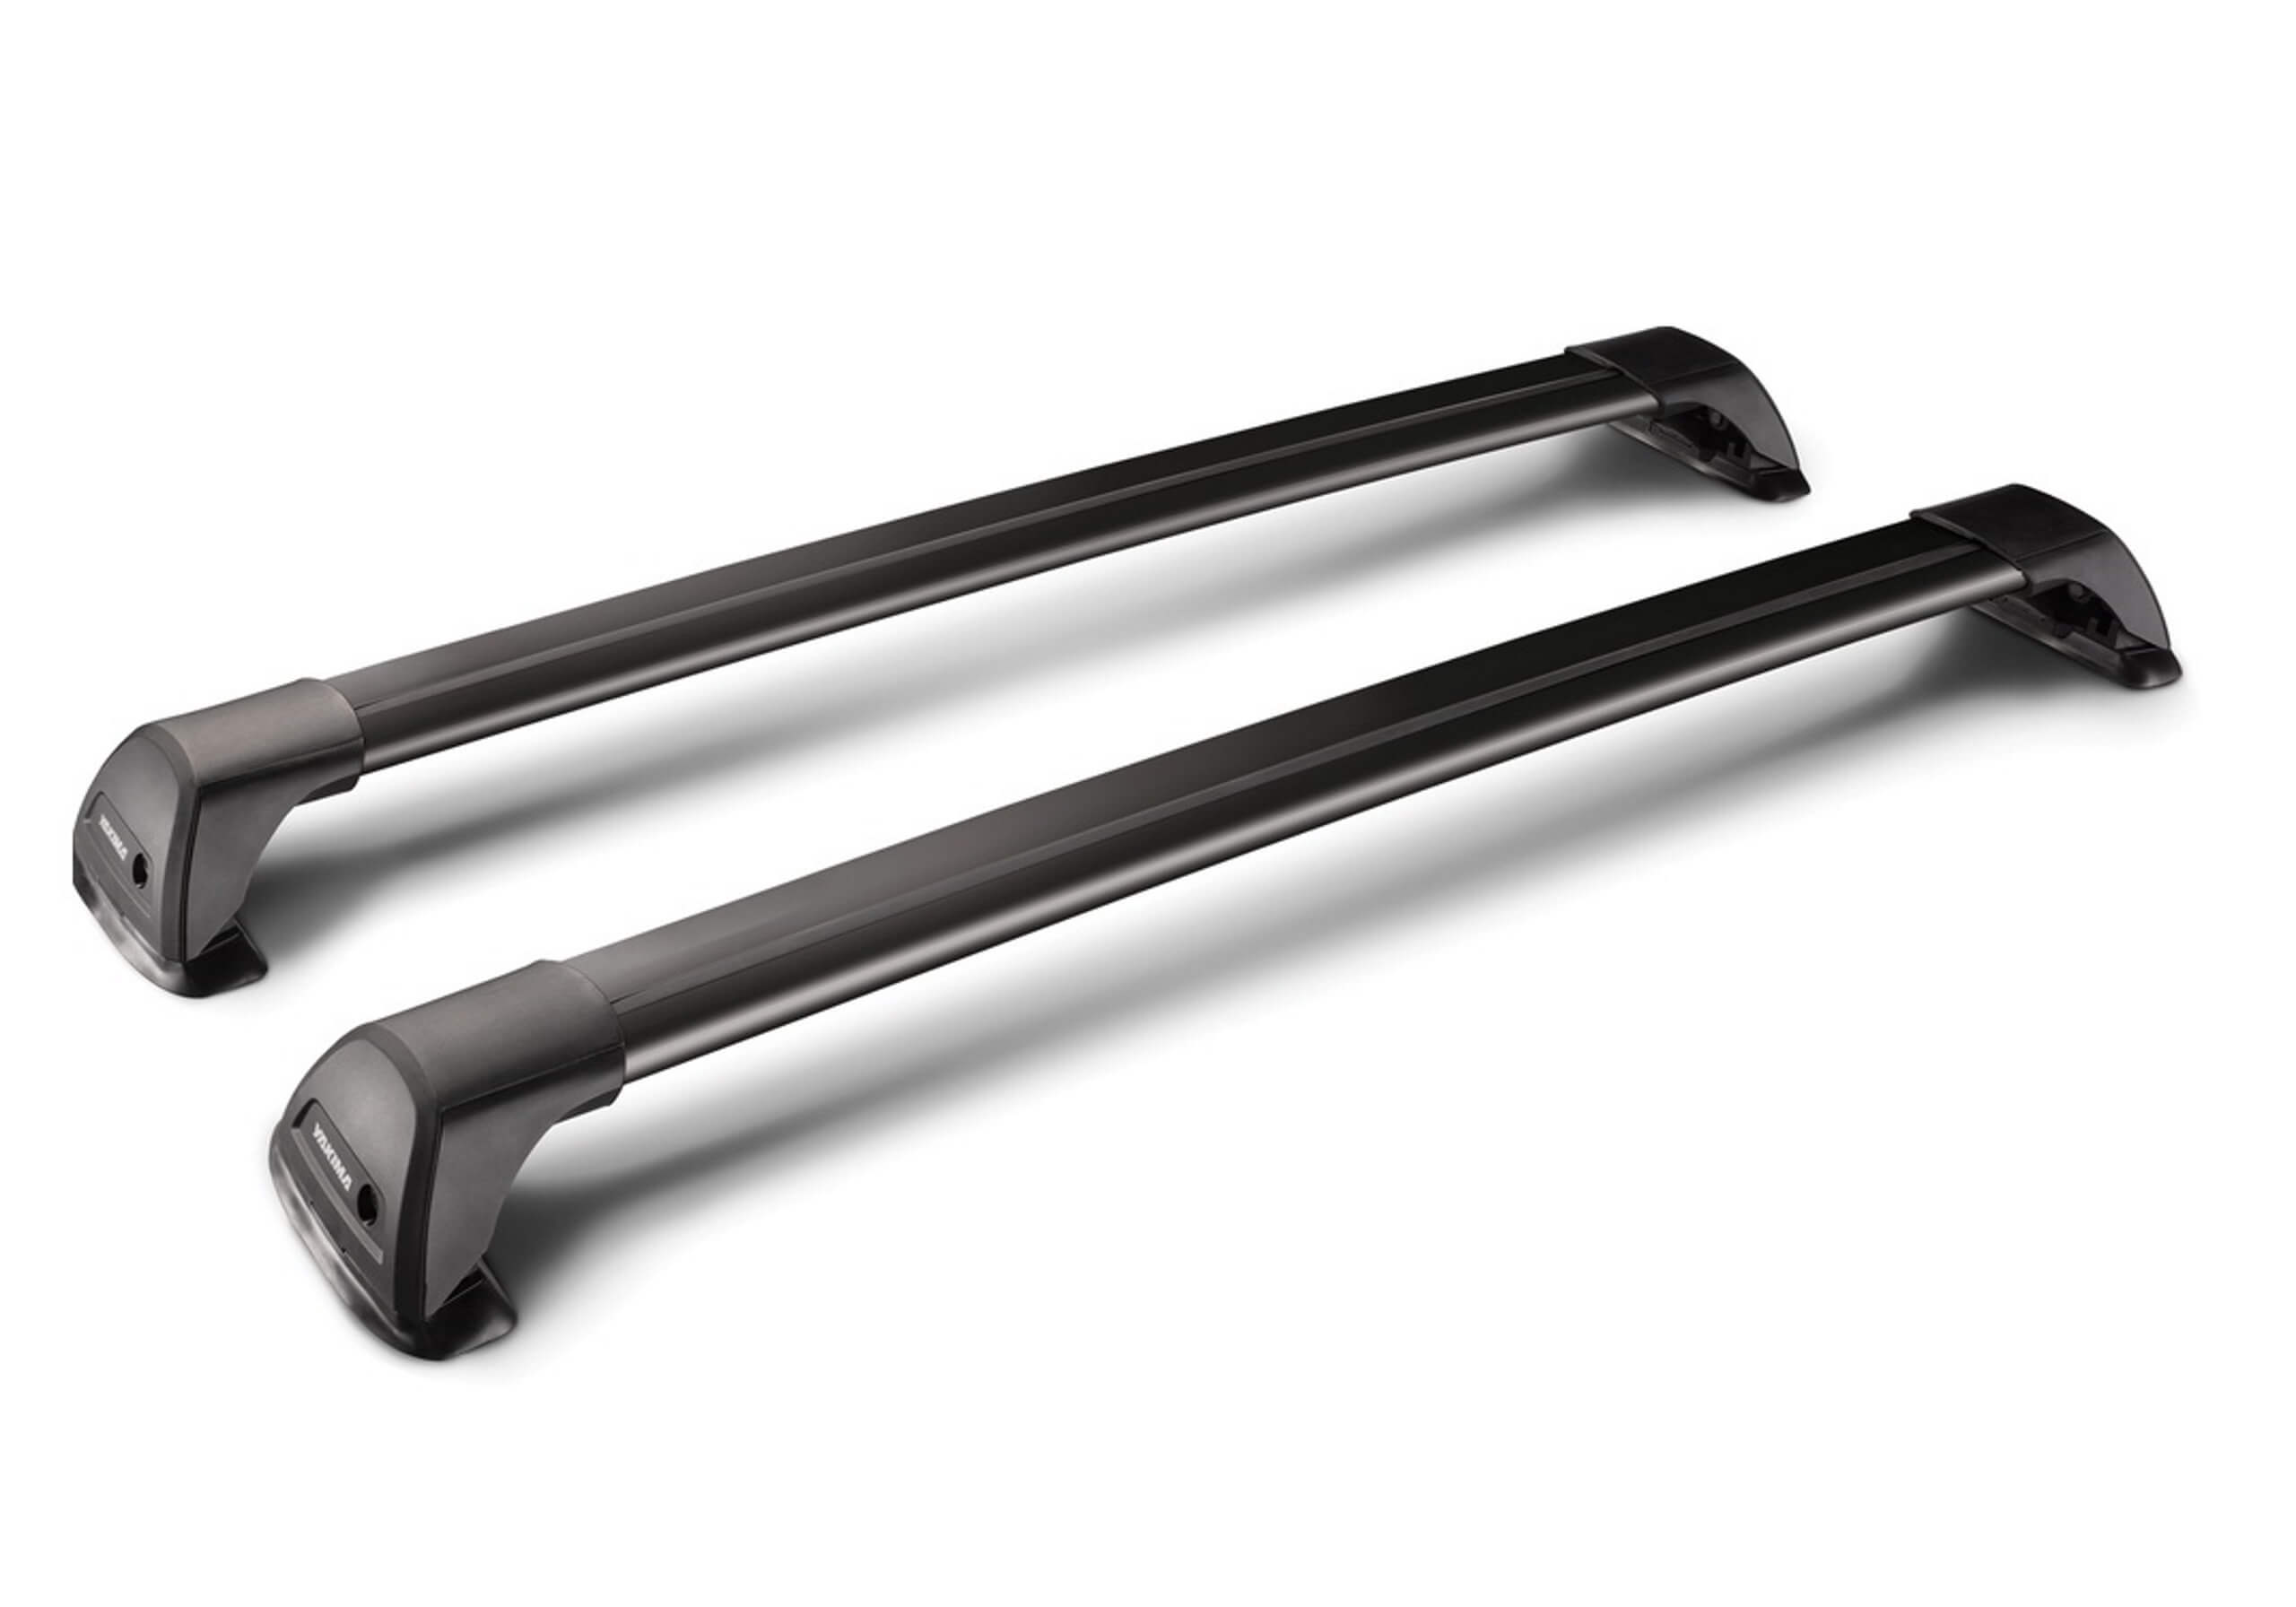 Saab 9-5 four door saloon (2010 to 2012):Yakima roof bars package - S26 black bars with K1082 kit